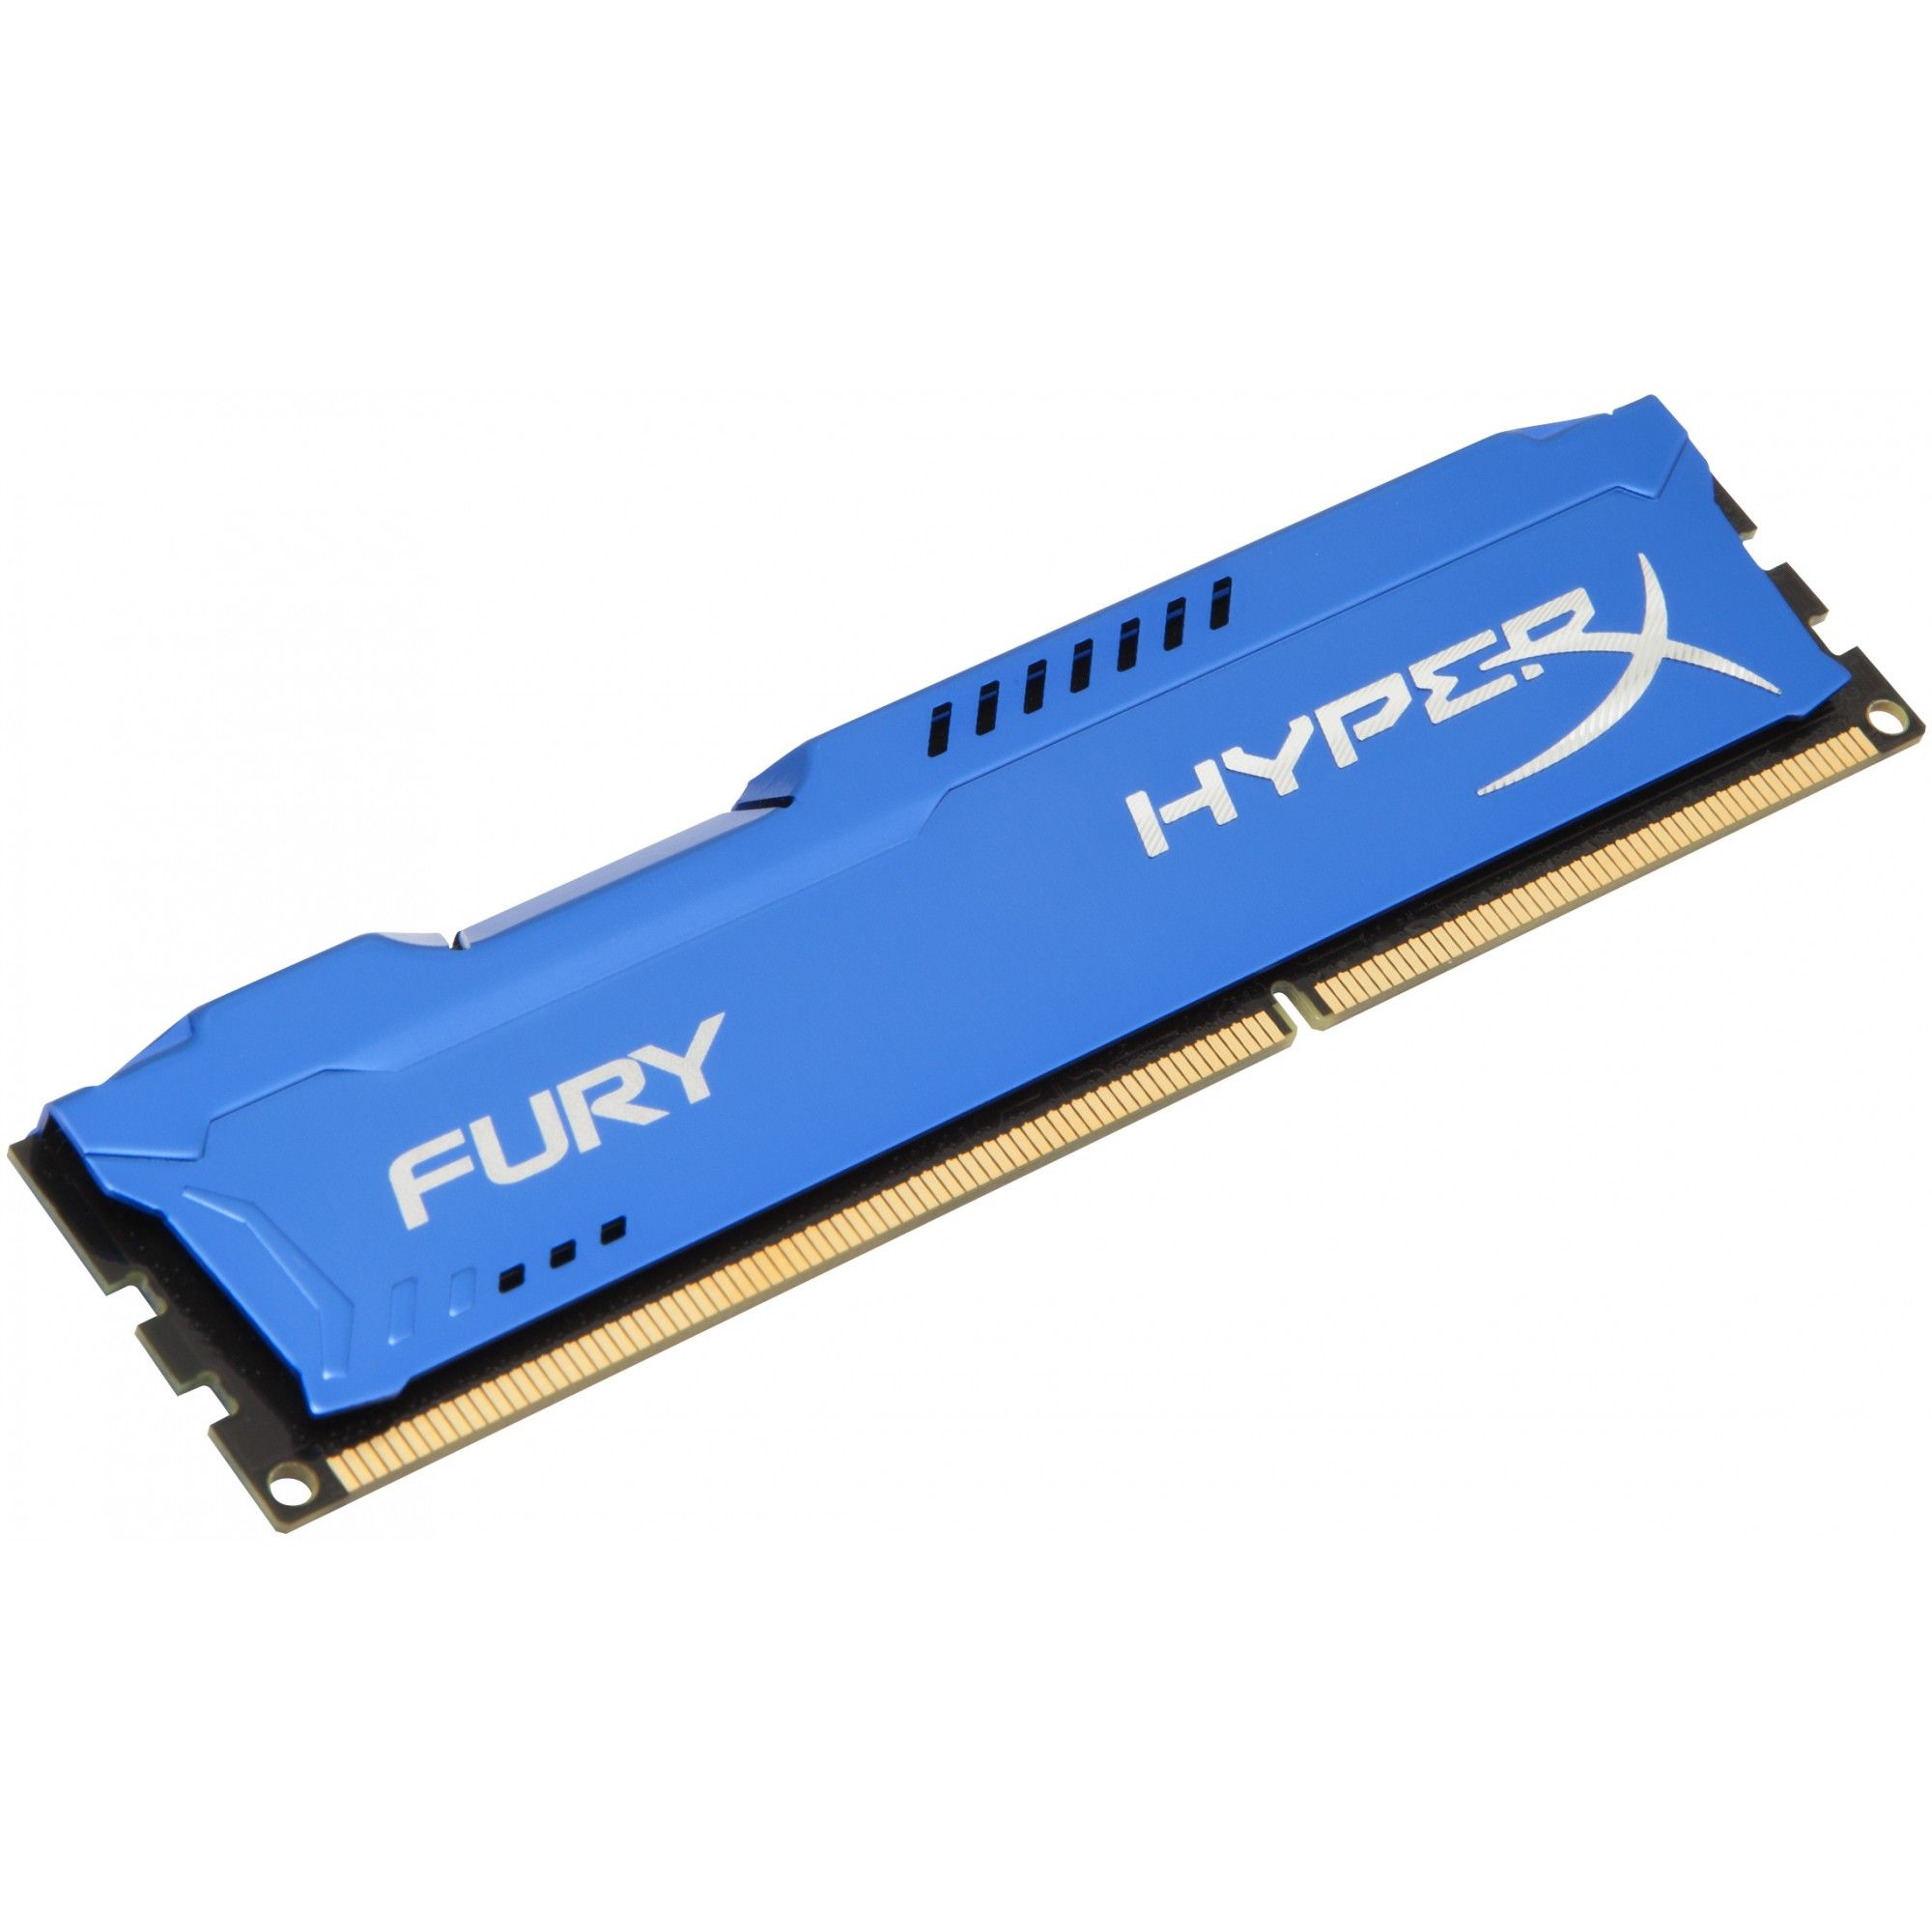 DDR3 - 4GB Bus 1600MHz Kingstong Fury